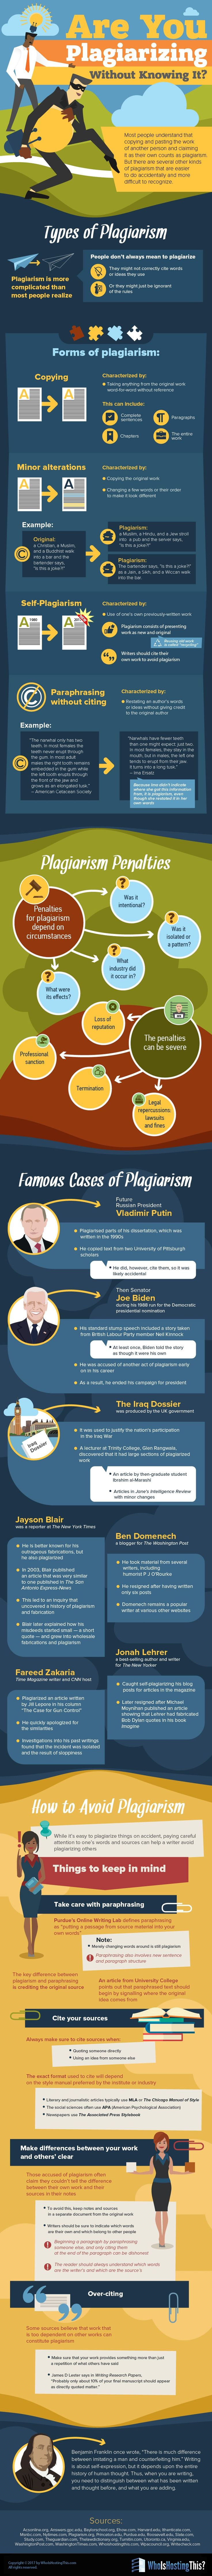 Are You Plagiarizing Without Knowing It? #infographic